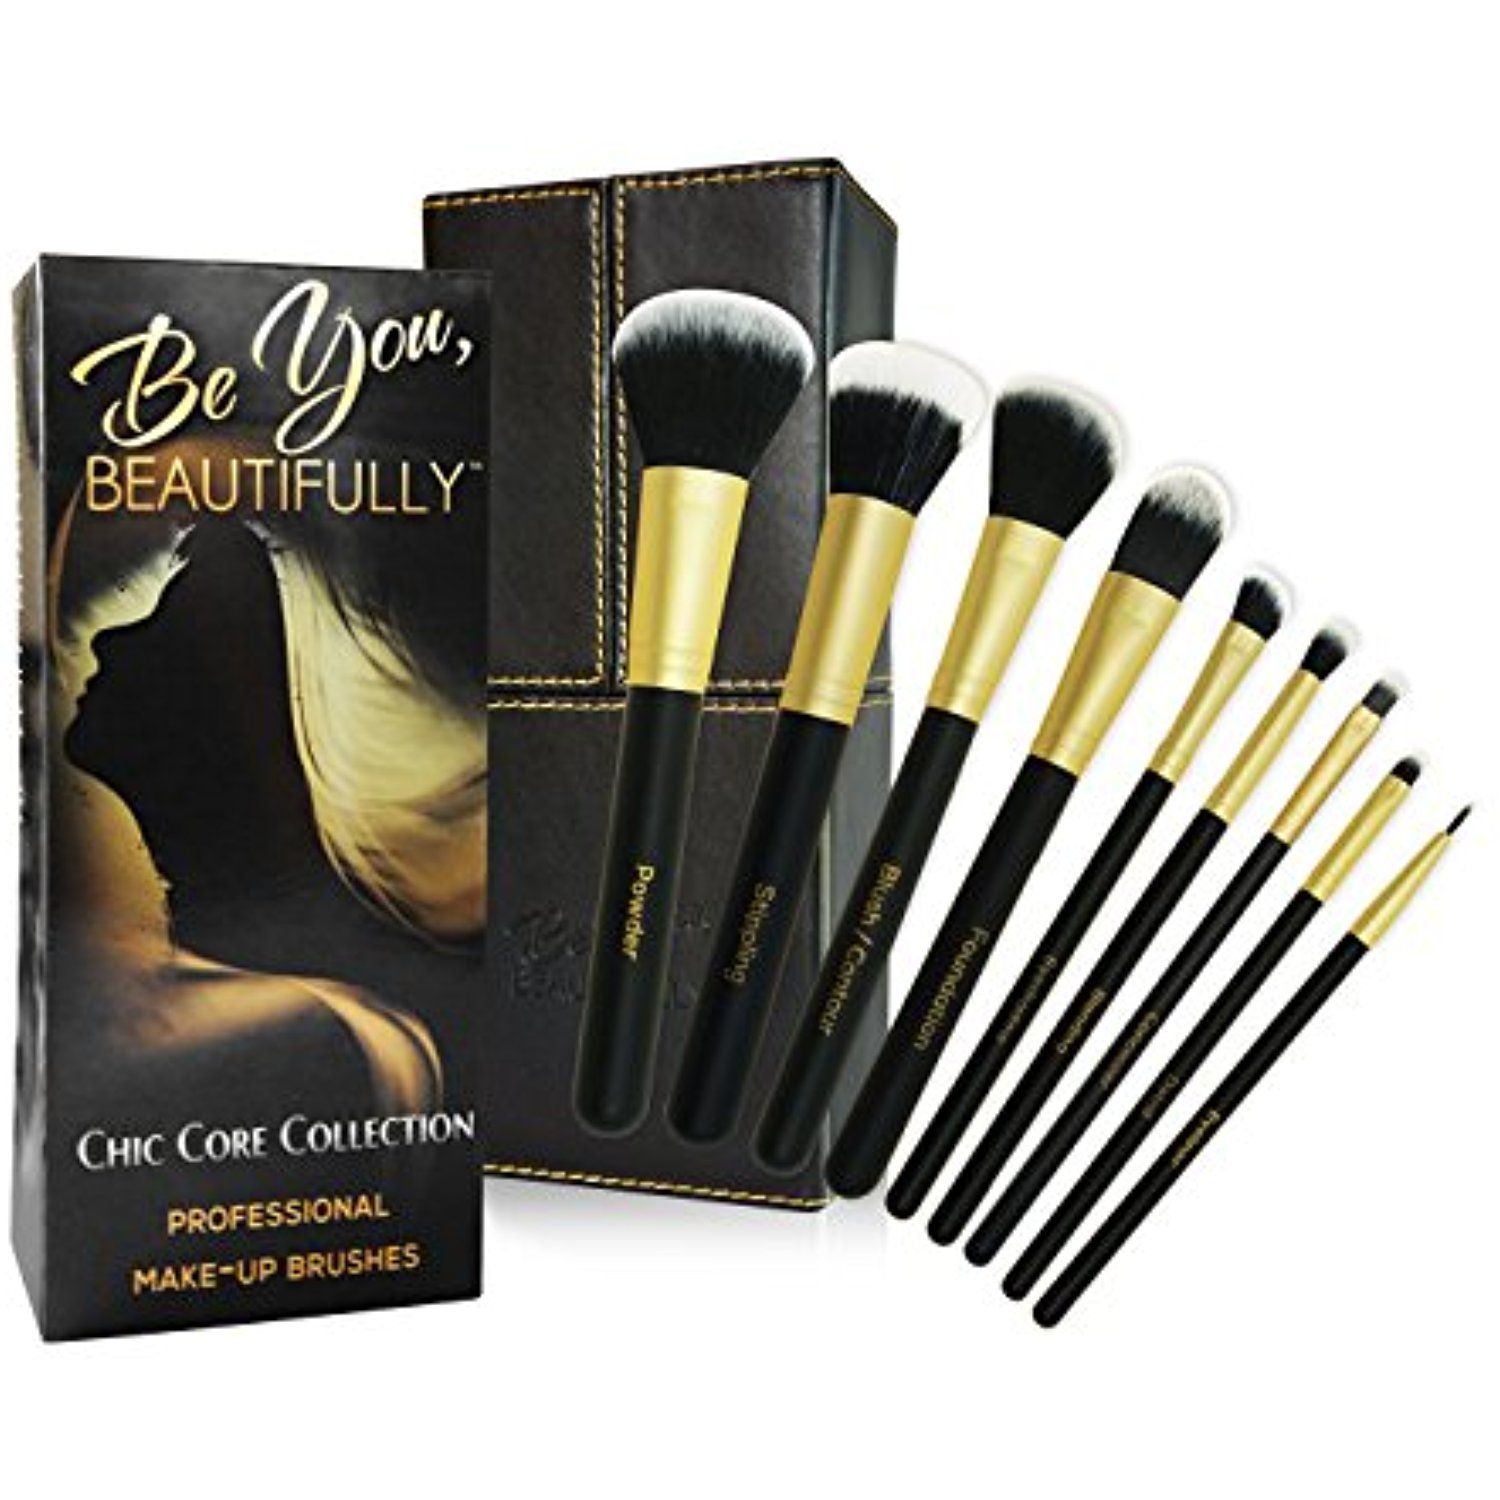 BEST SELLING Professional 8 Piece Makeup Brush Set with